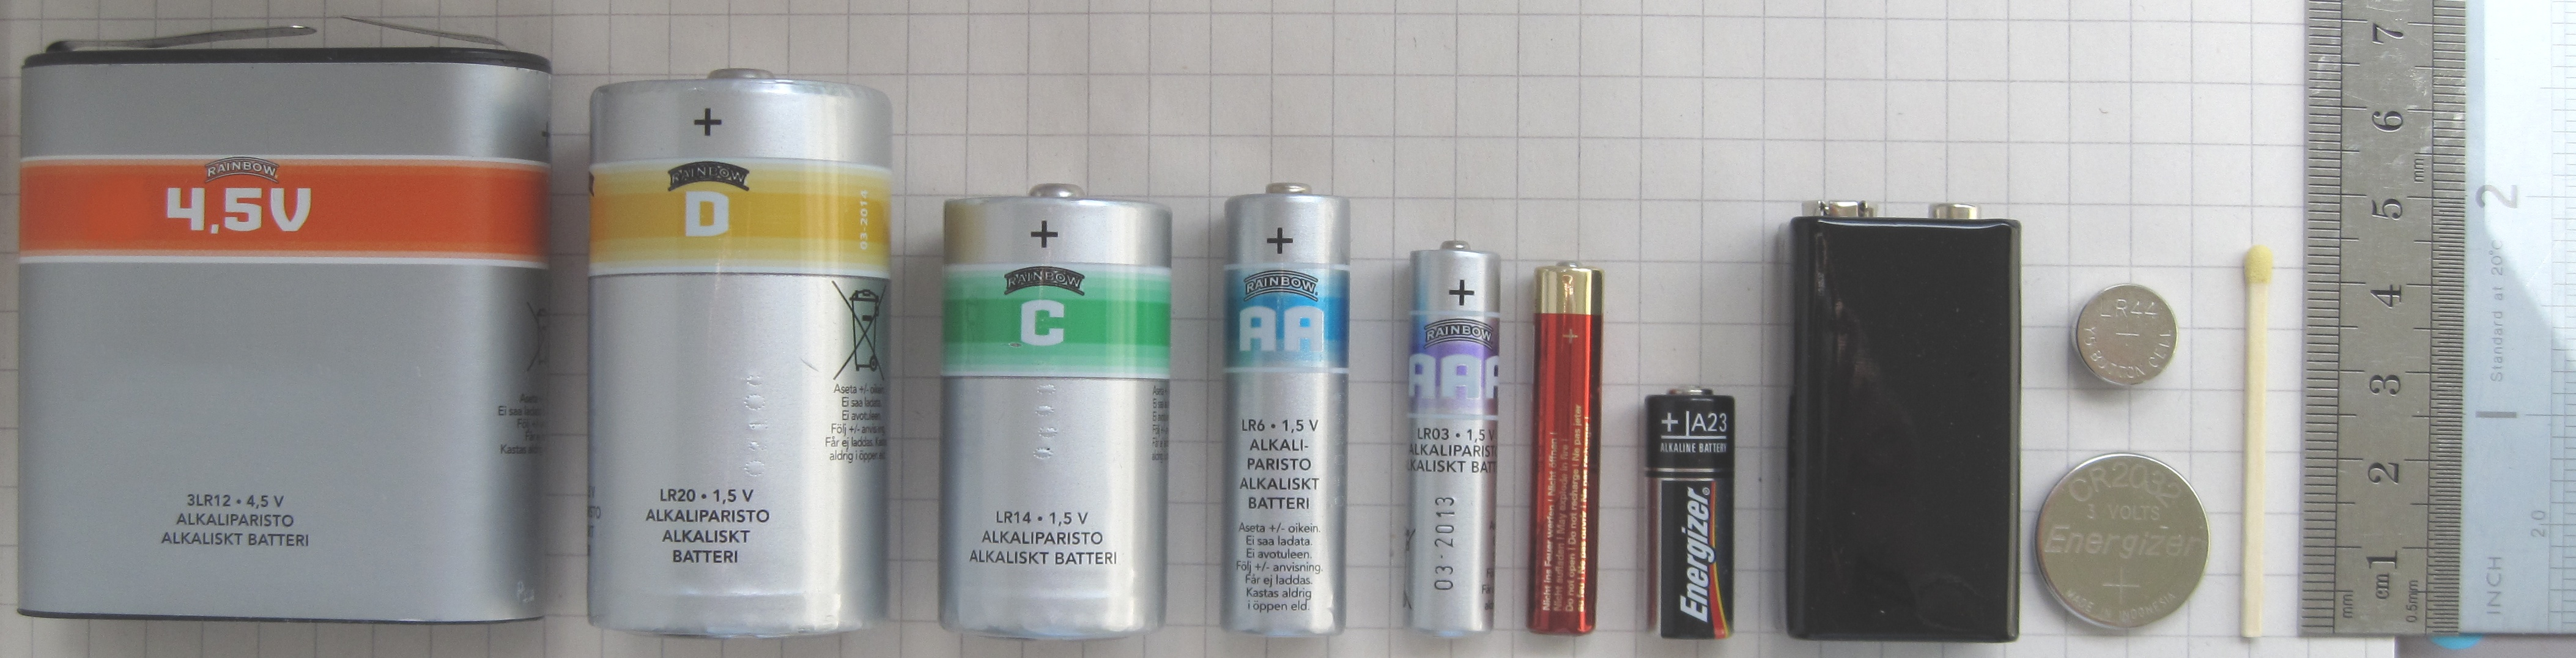 File:Batteries comparison 4,5 D C AA AAA AAAA A23 9V CR2032 LR44 ...